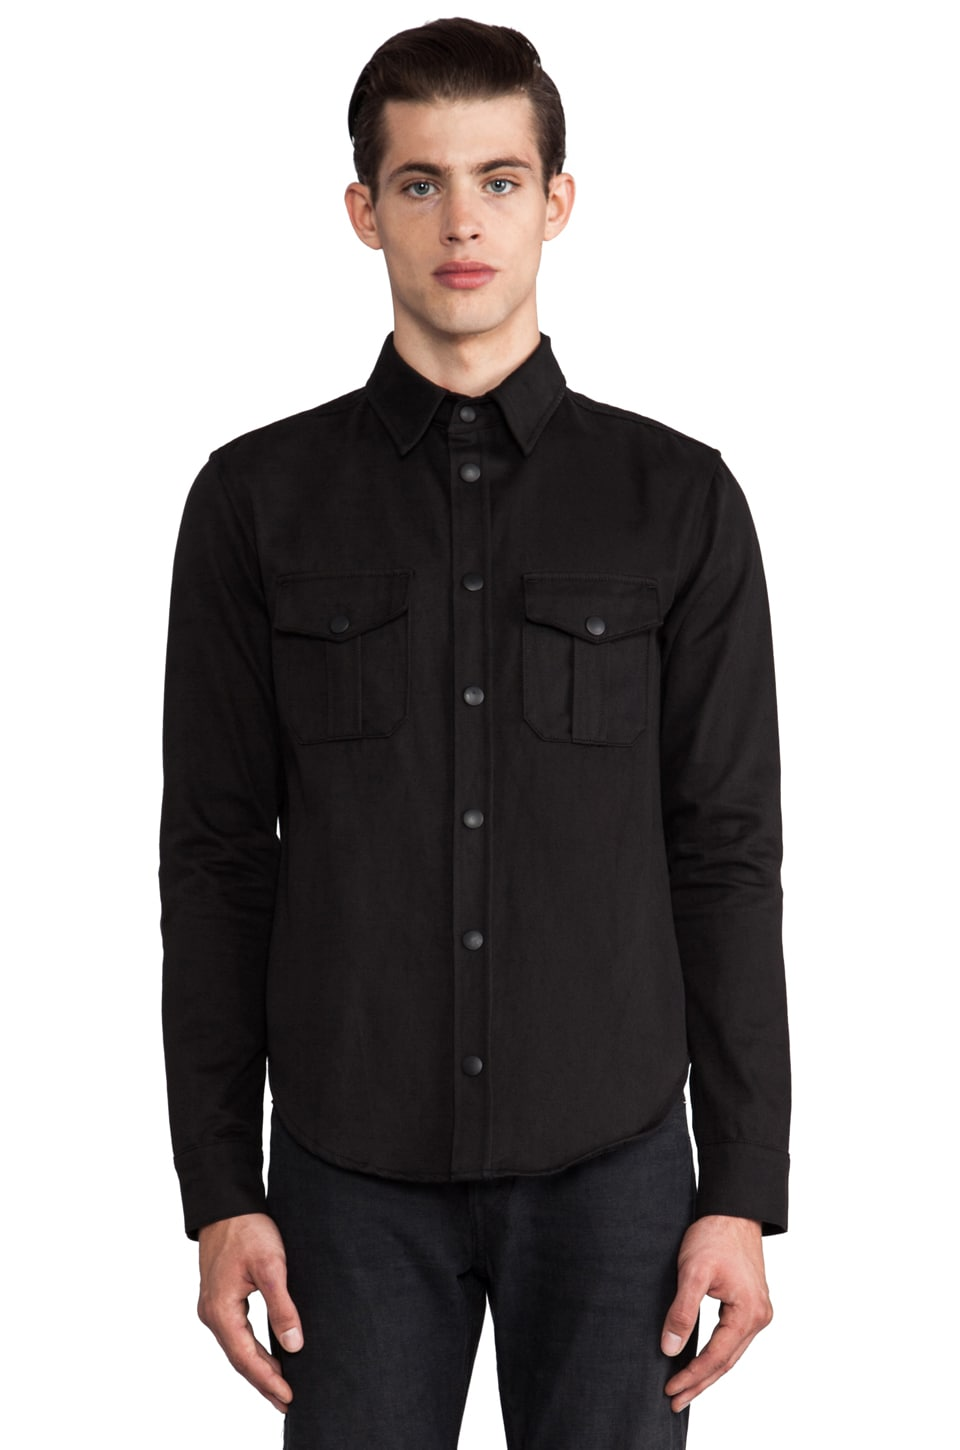 JOHN ELLIOTT Snap Overshirt w/ Leather Elbow Pads in Black/Slate